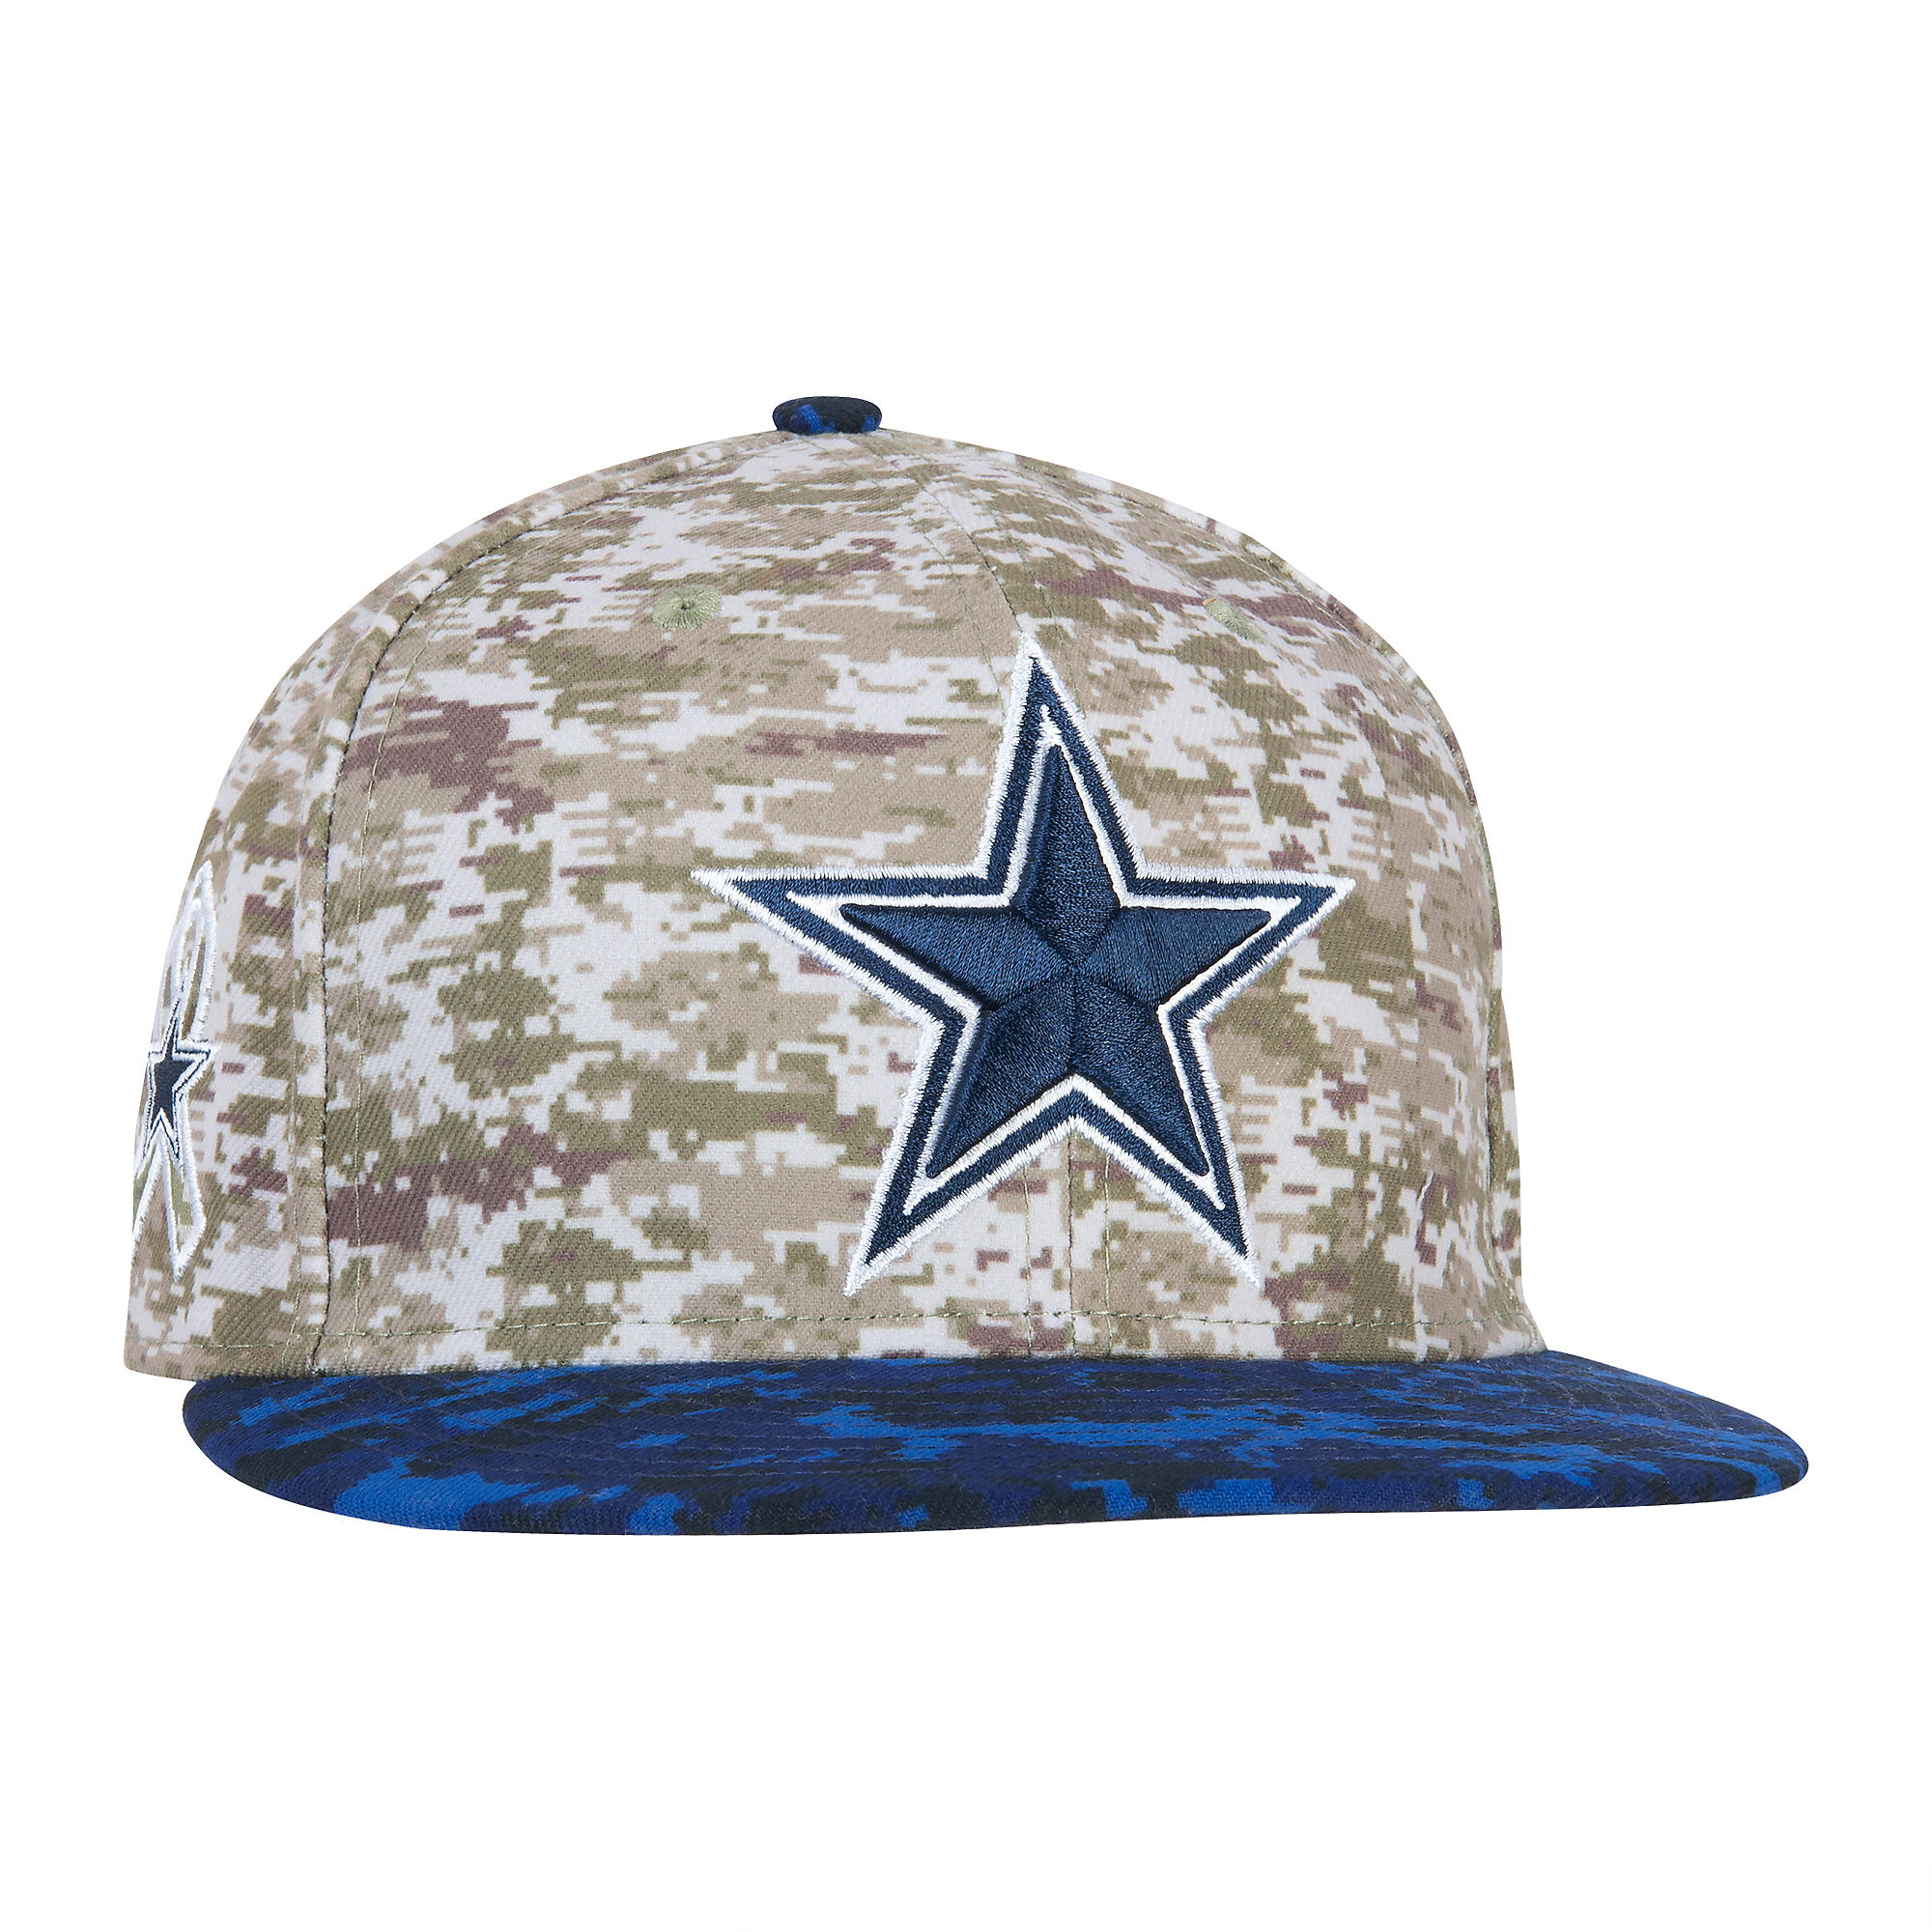 Dallas Cowboys New Era Salute to Service 59Fifty Cap  914a948a28c